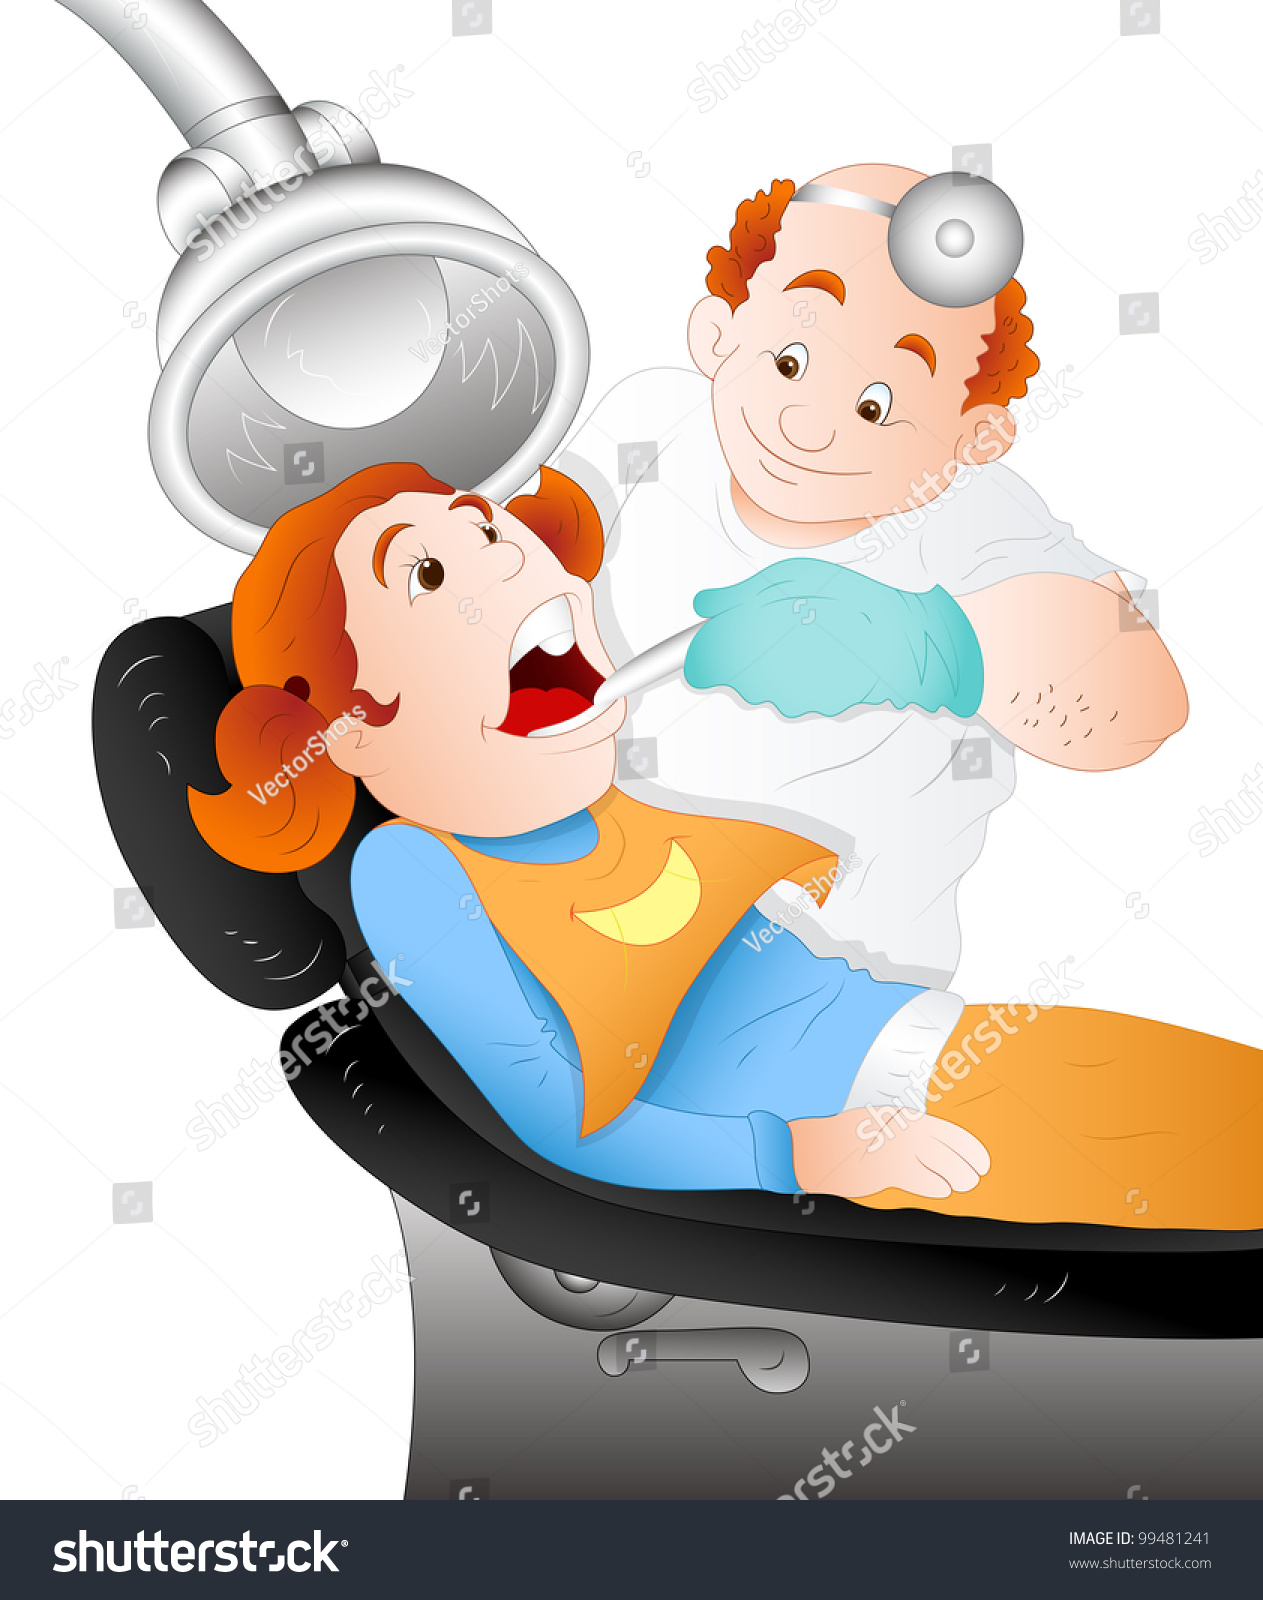 Tooth Extraction Cartoon Stock Vector Royalty Free 99481241